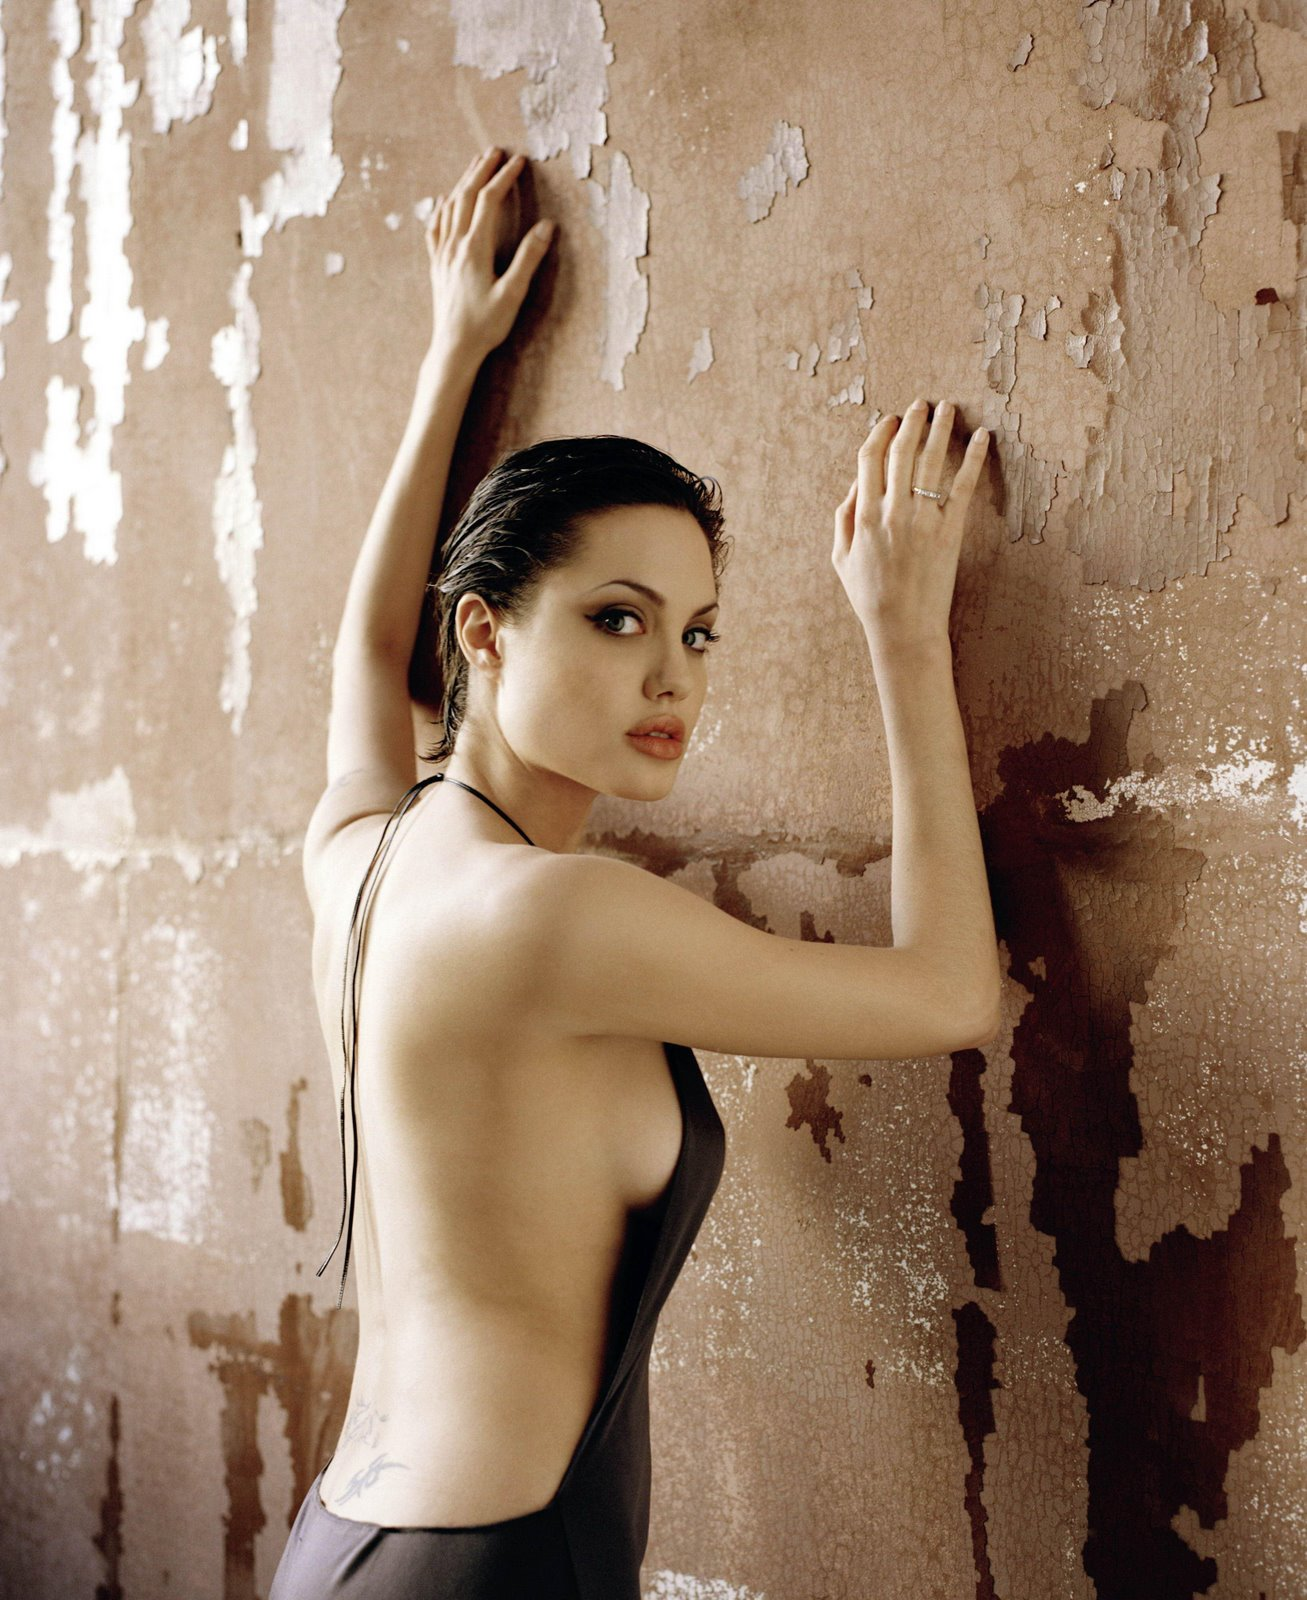 Nude pictures of angelina jolie